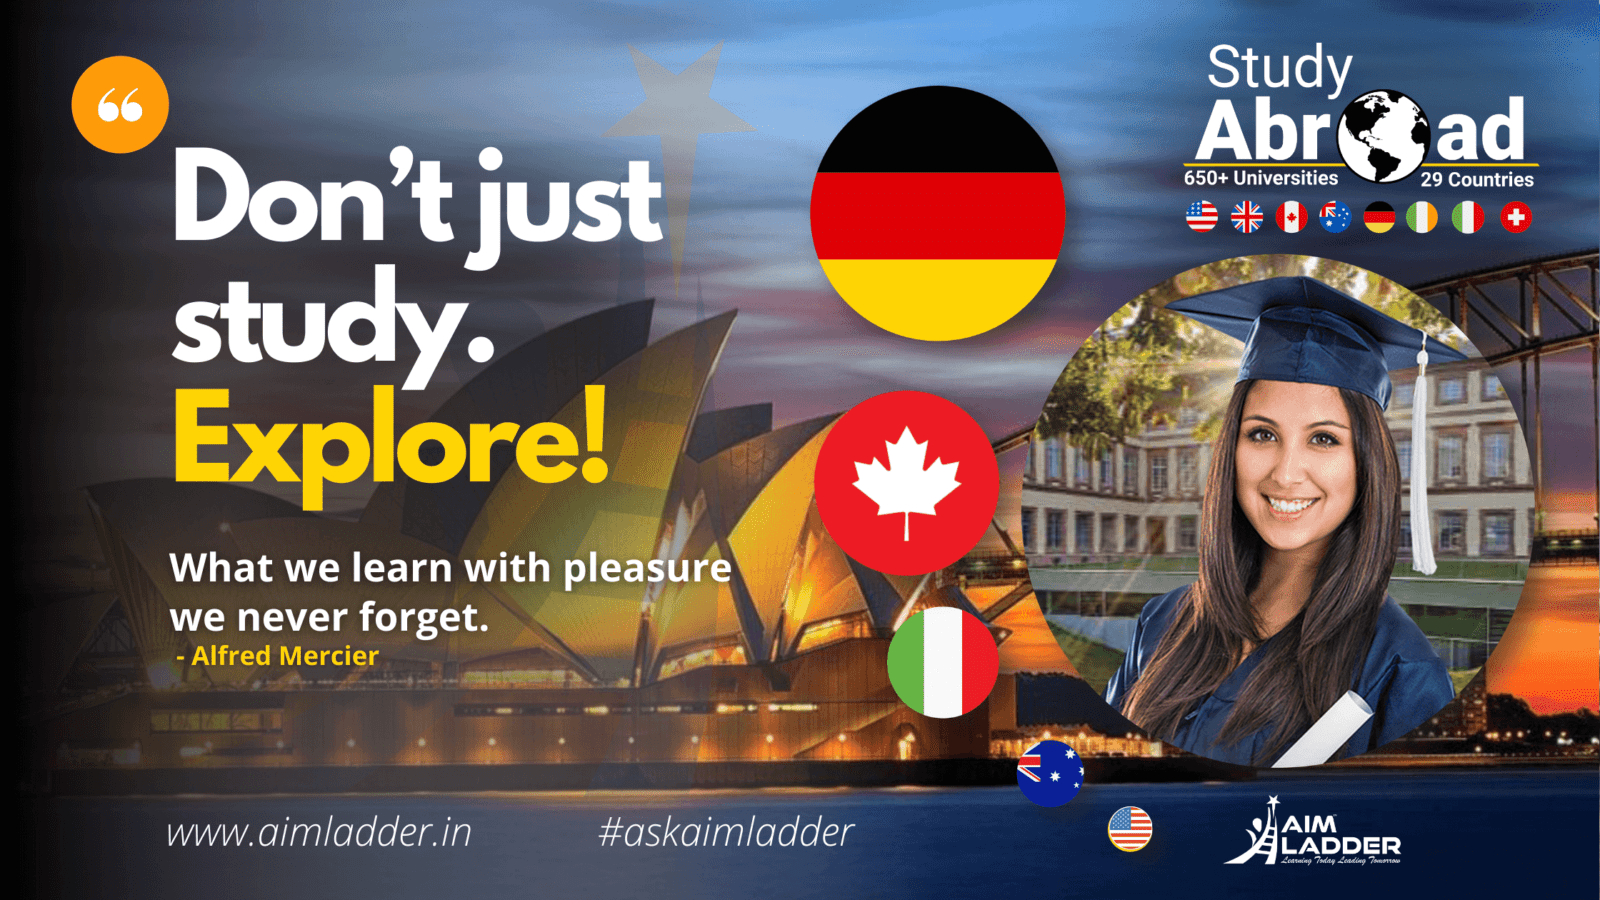 Study Abroad - with Aimladder